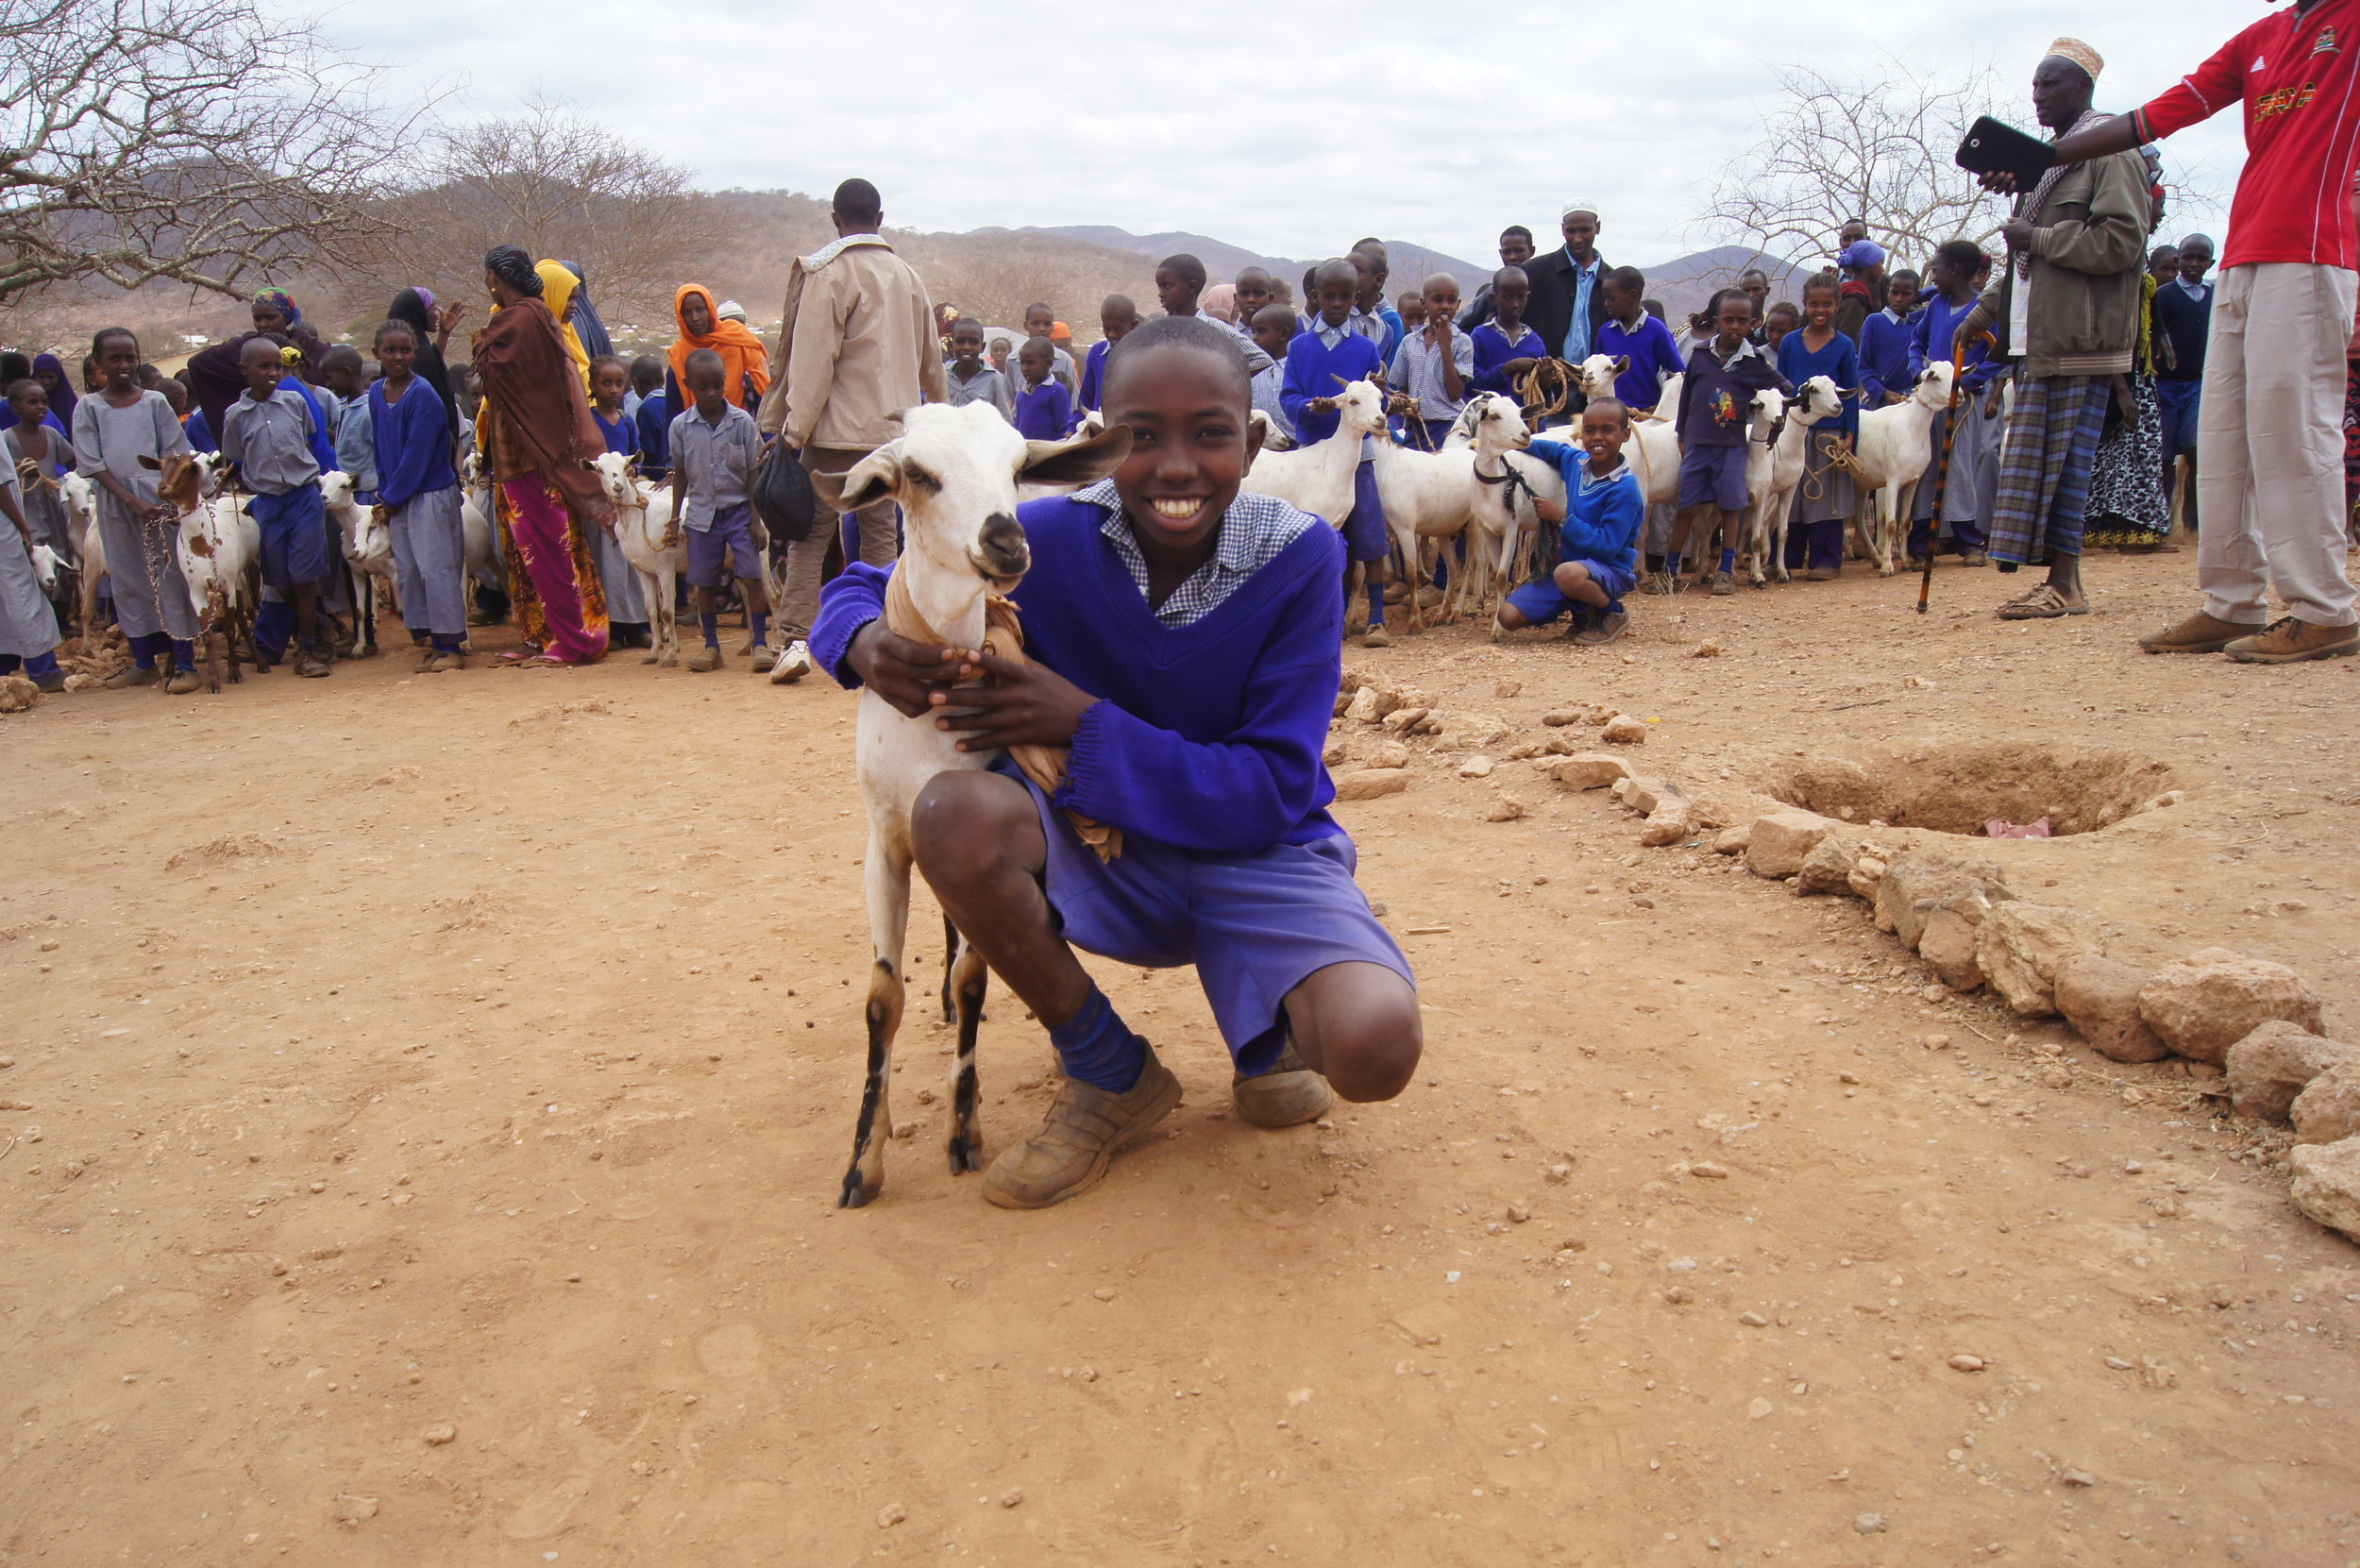 Watch Videos - Learn how The Goat Project started, how it has made a difference, and even how to get your church involved!